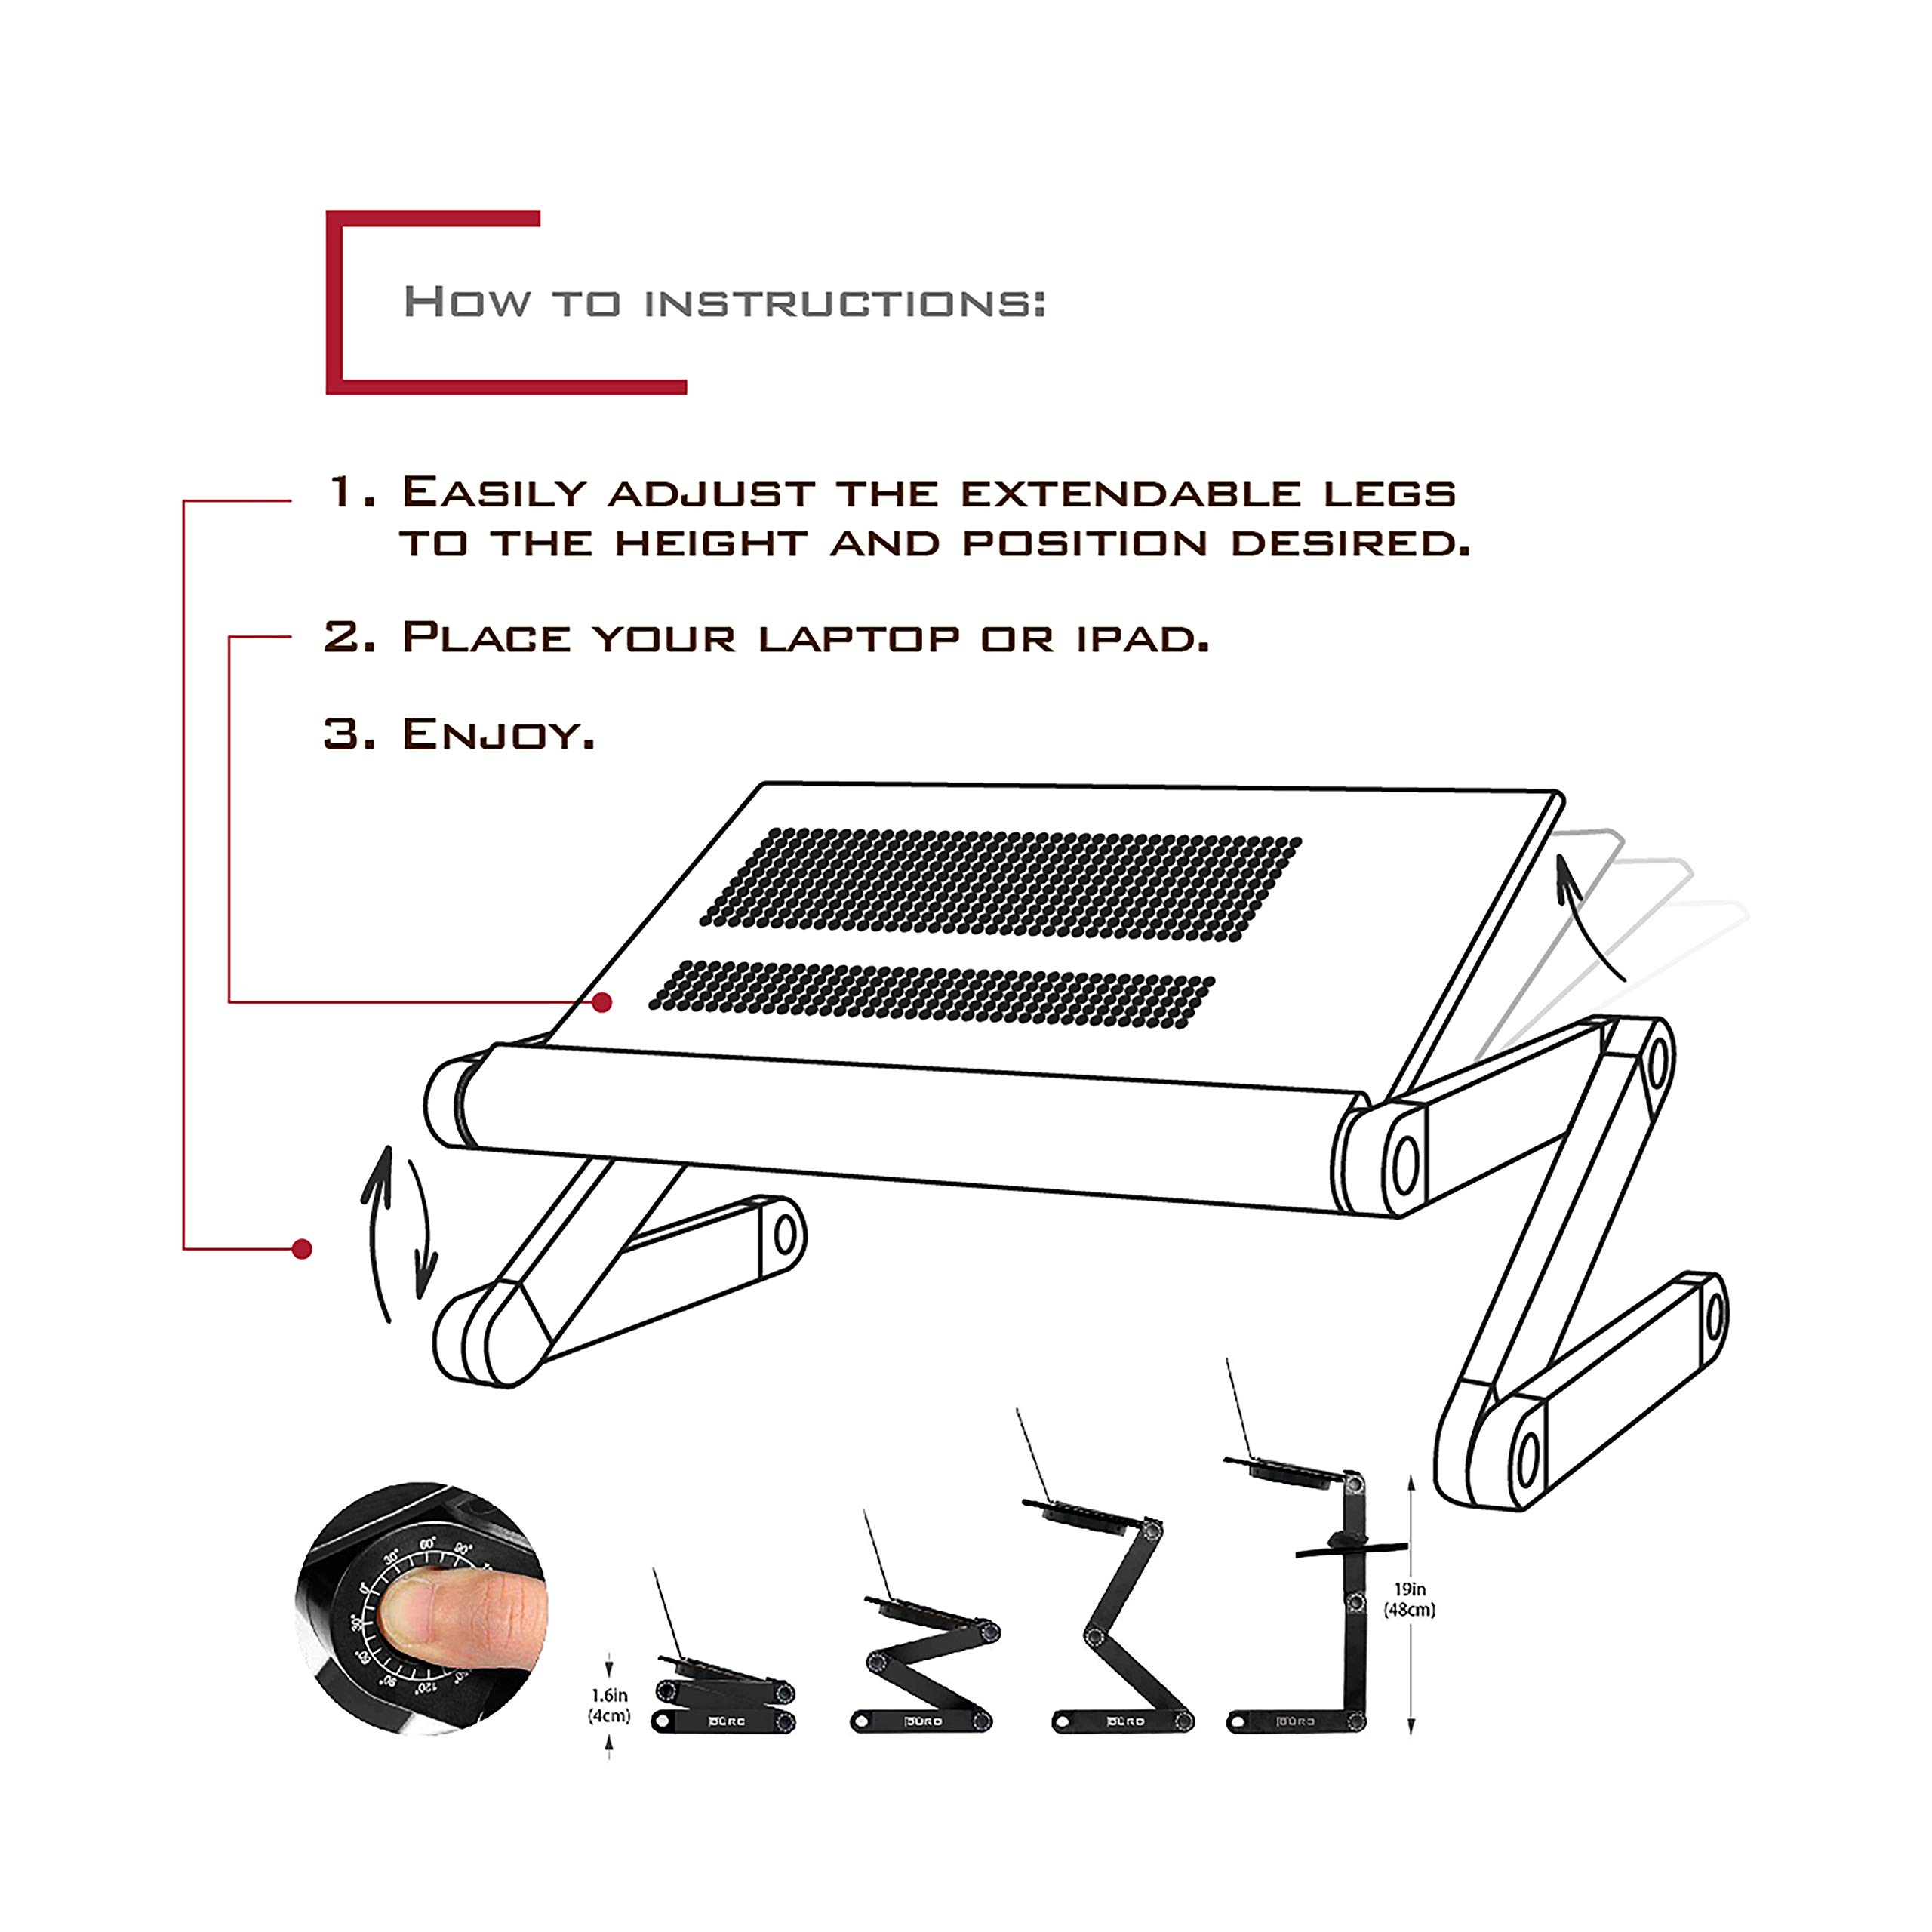 Height Laptop Holder is Adjustable for Desk Or Bed with Mouse and Mouse-pad | Black Color | Laptop Table Top with Vented Stand for Cooling | Comes with Side Tray for Mouse by Büro Solutions (Image #7)